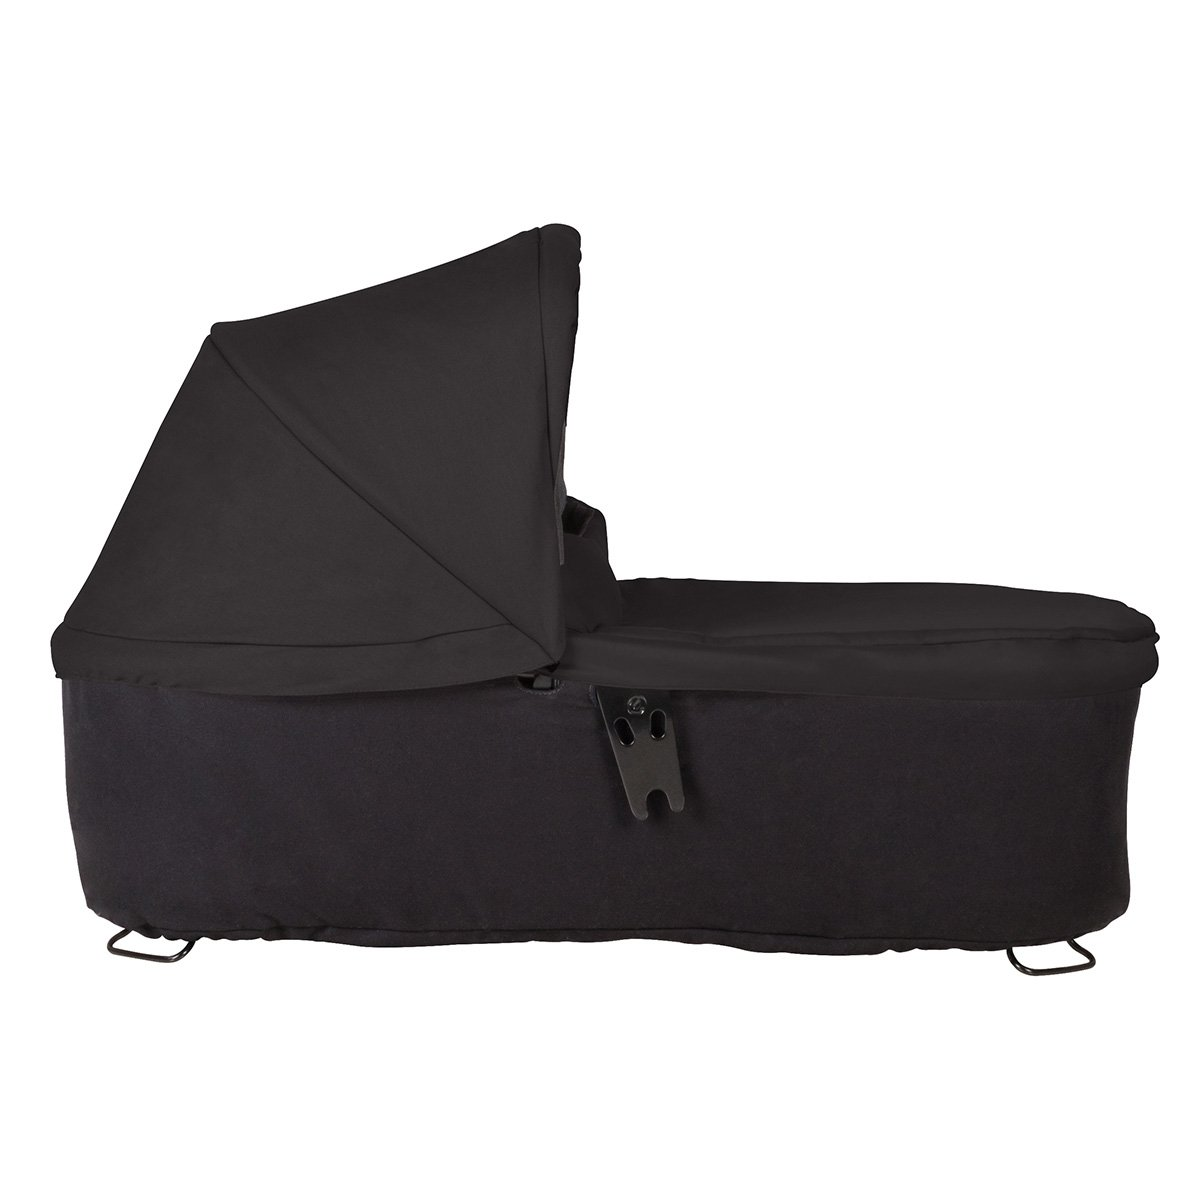 Mountain Buggy Carrycot+ for Duet, Black